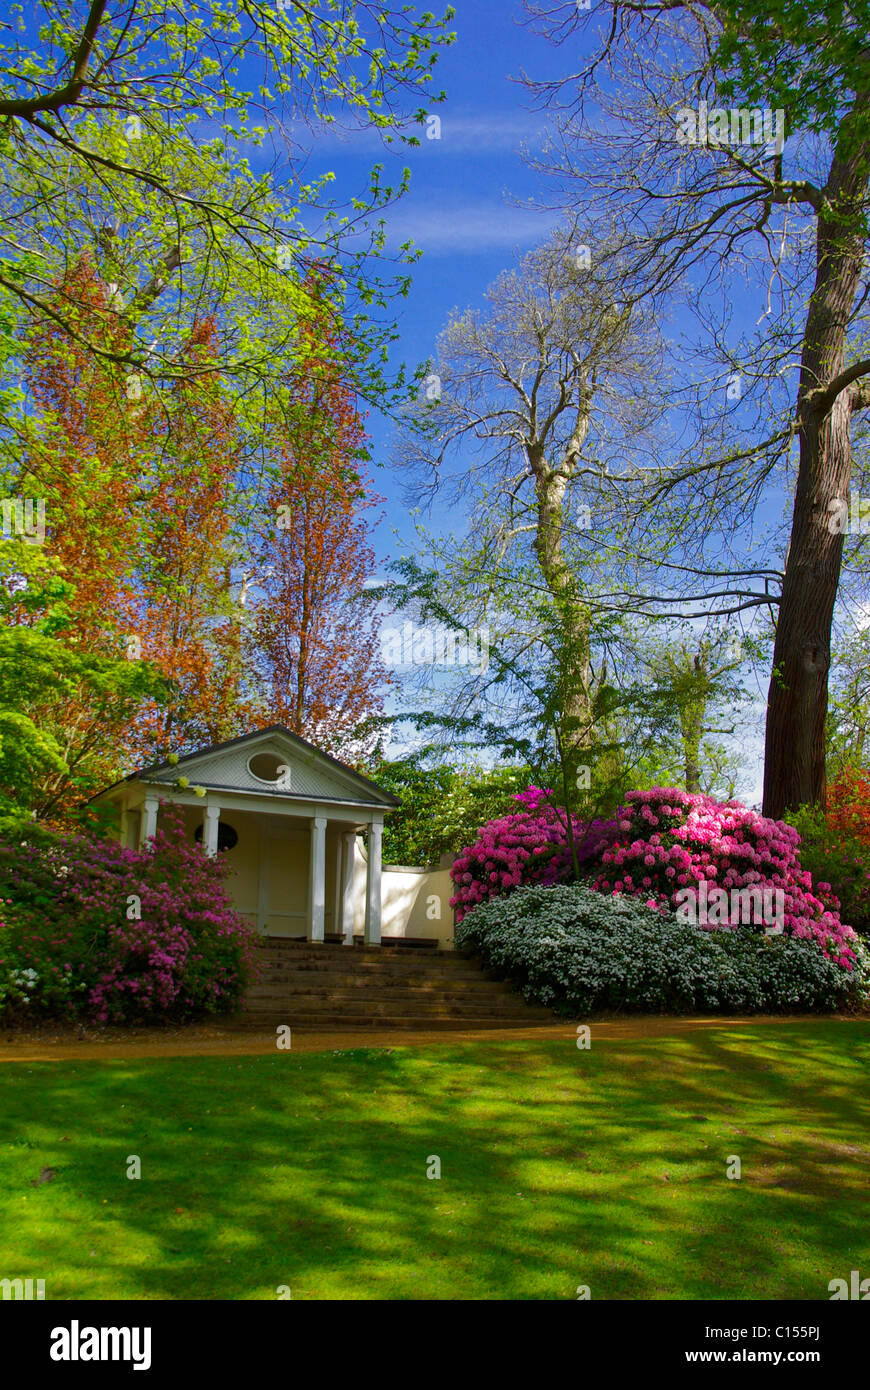 Summer House in spring - Stock Image